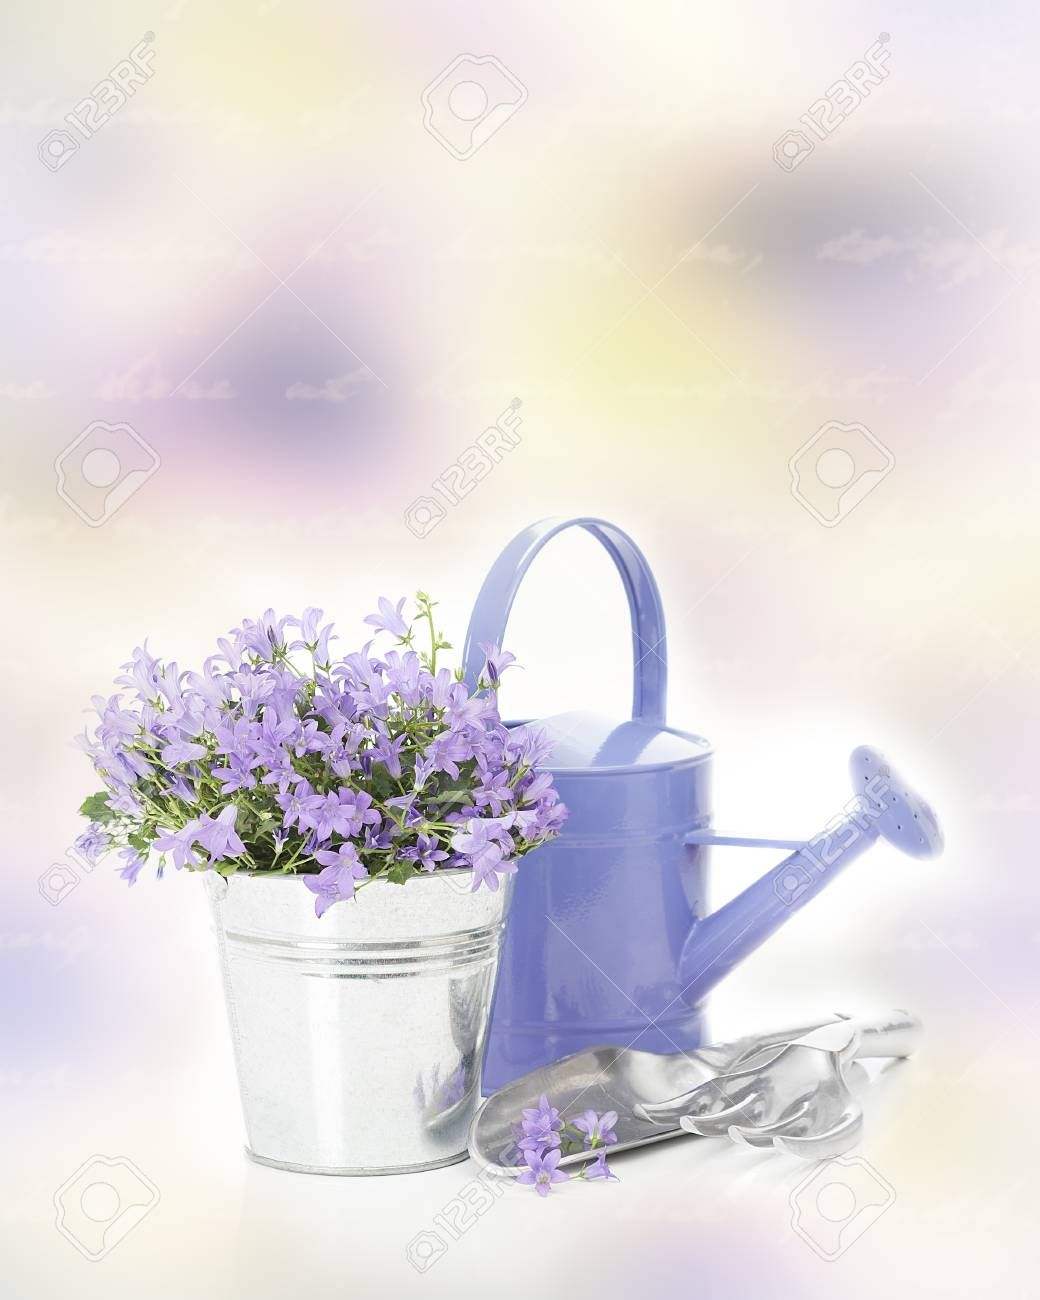 Campanula Flowers In Pot With Garden Tools Campanula Flowers Garden Plant Pots Garden Tools